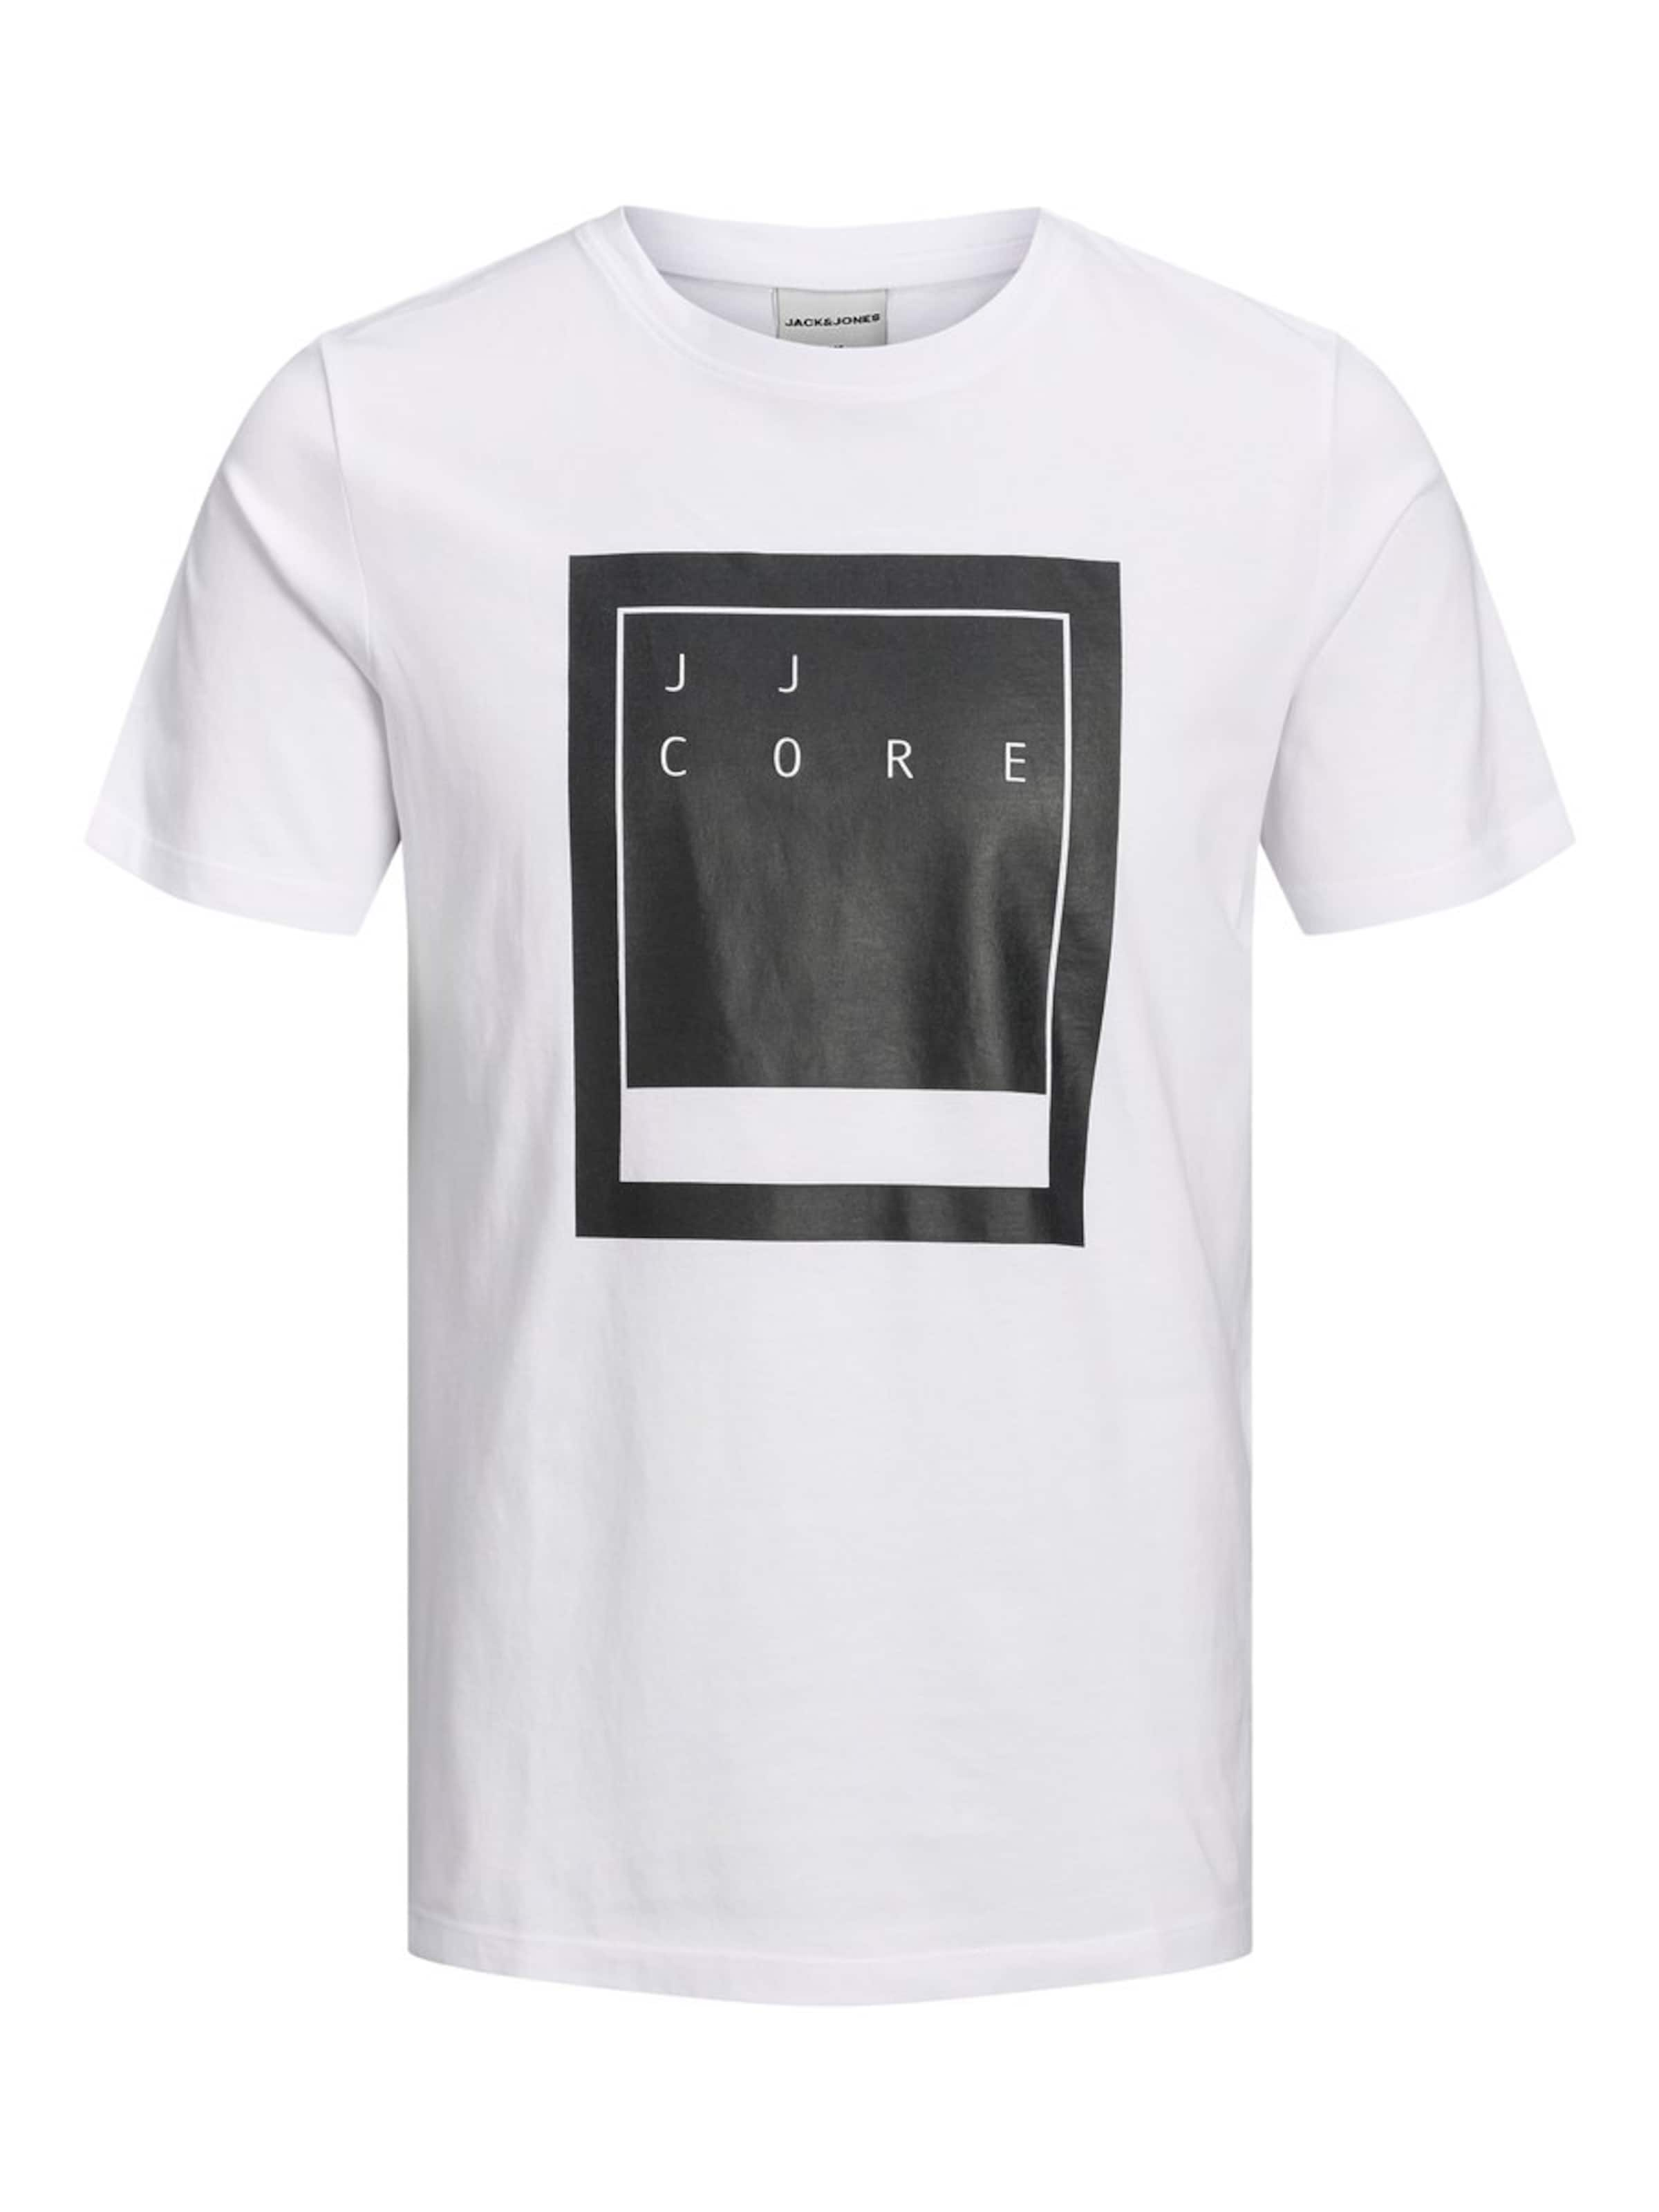 shirt NoirBlanc Jackamp; En Jones T wn0XP8Ok